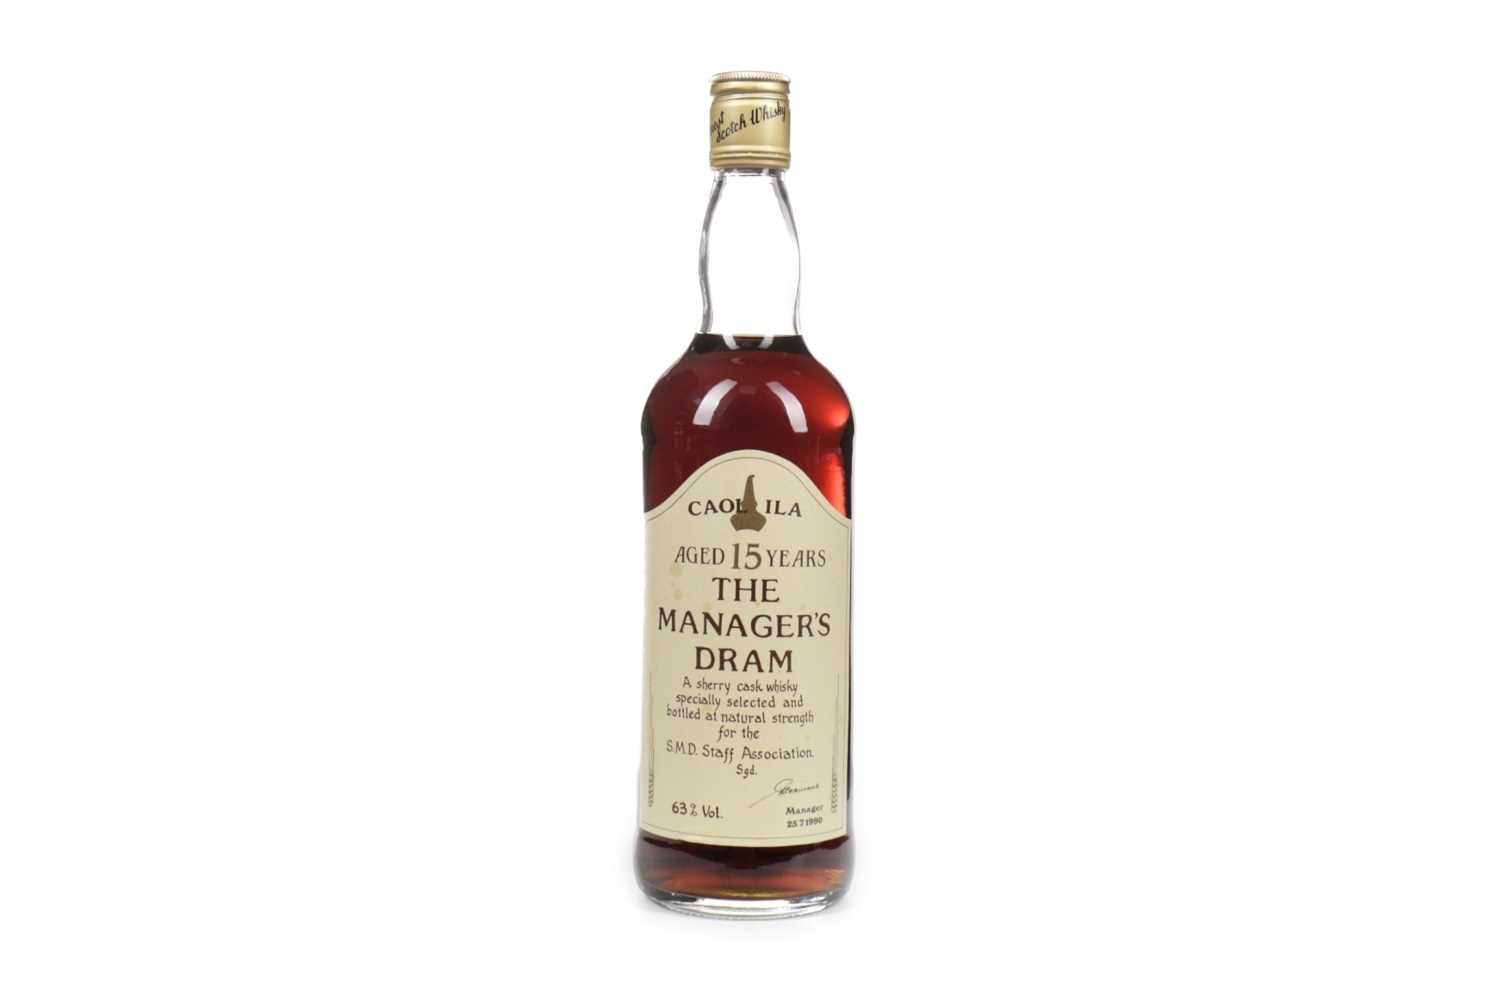 Lot 86-CAOL ILA MANAGERS DRAM AGED 15 YEARS